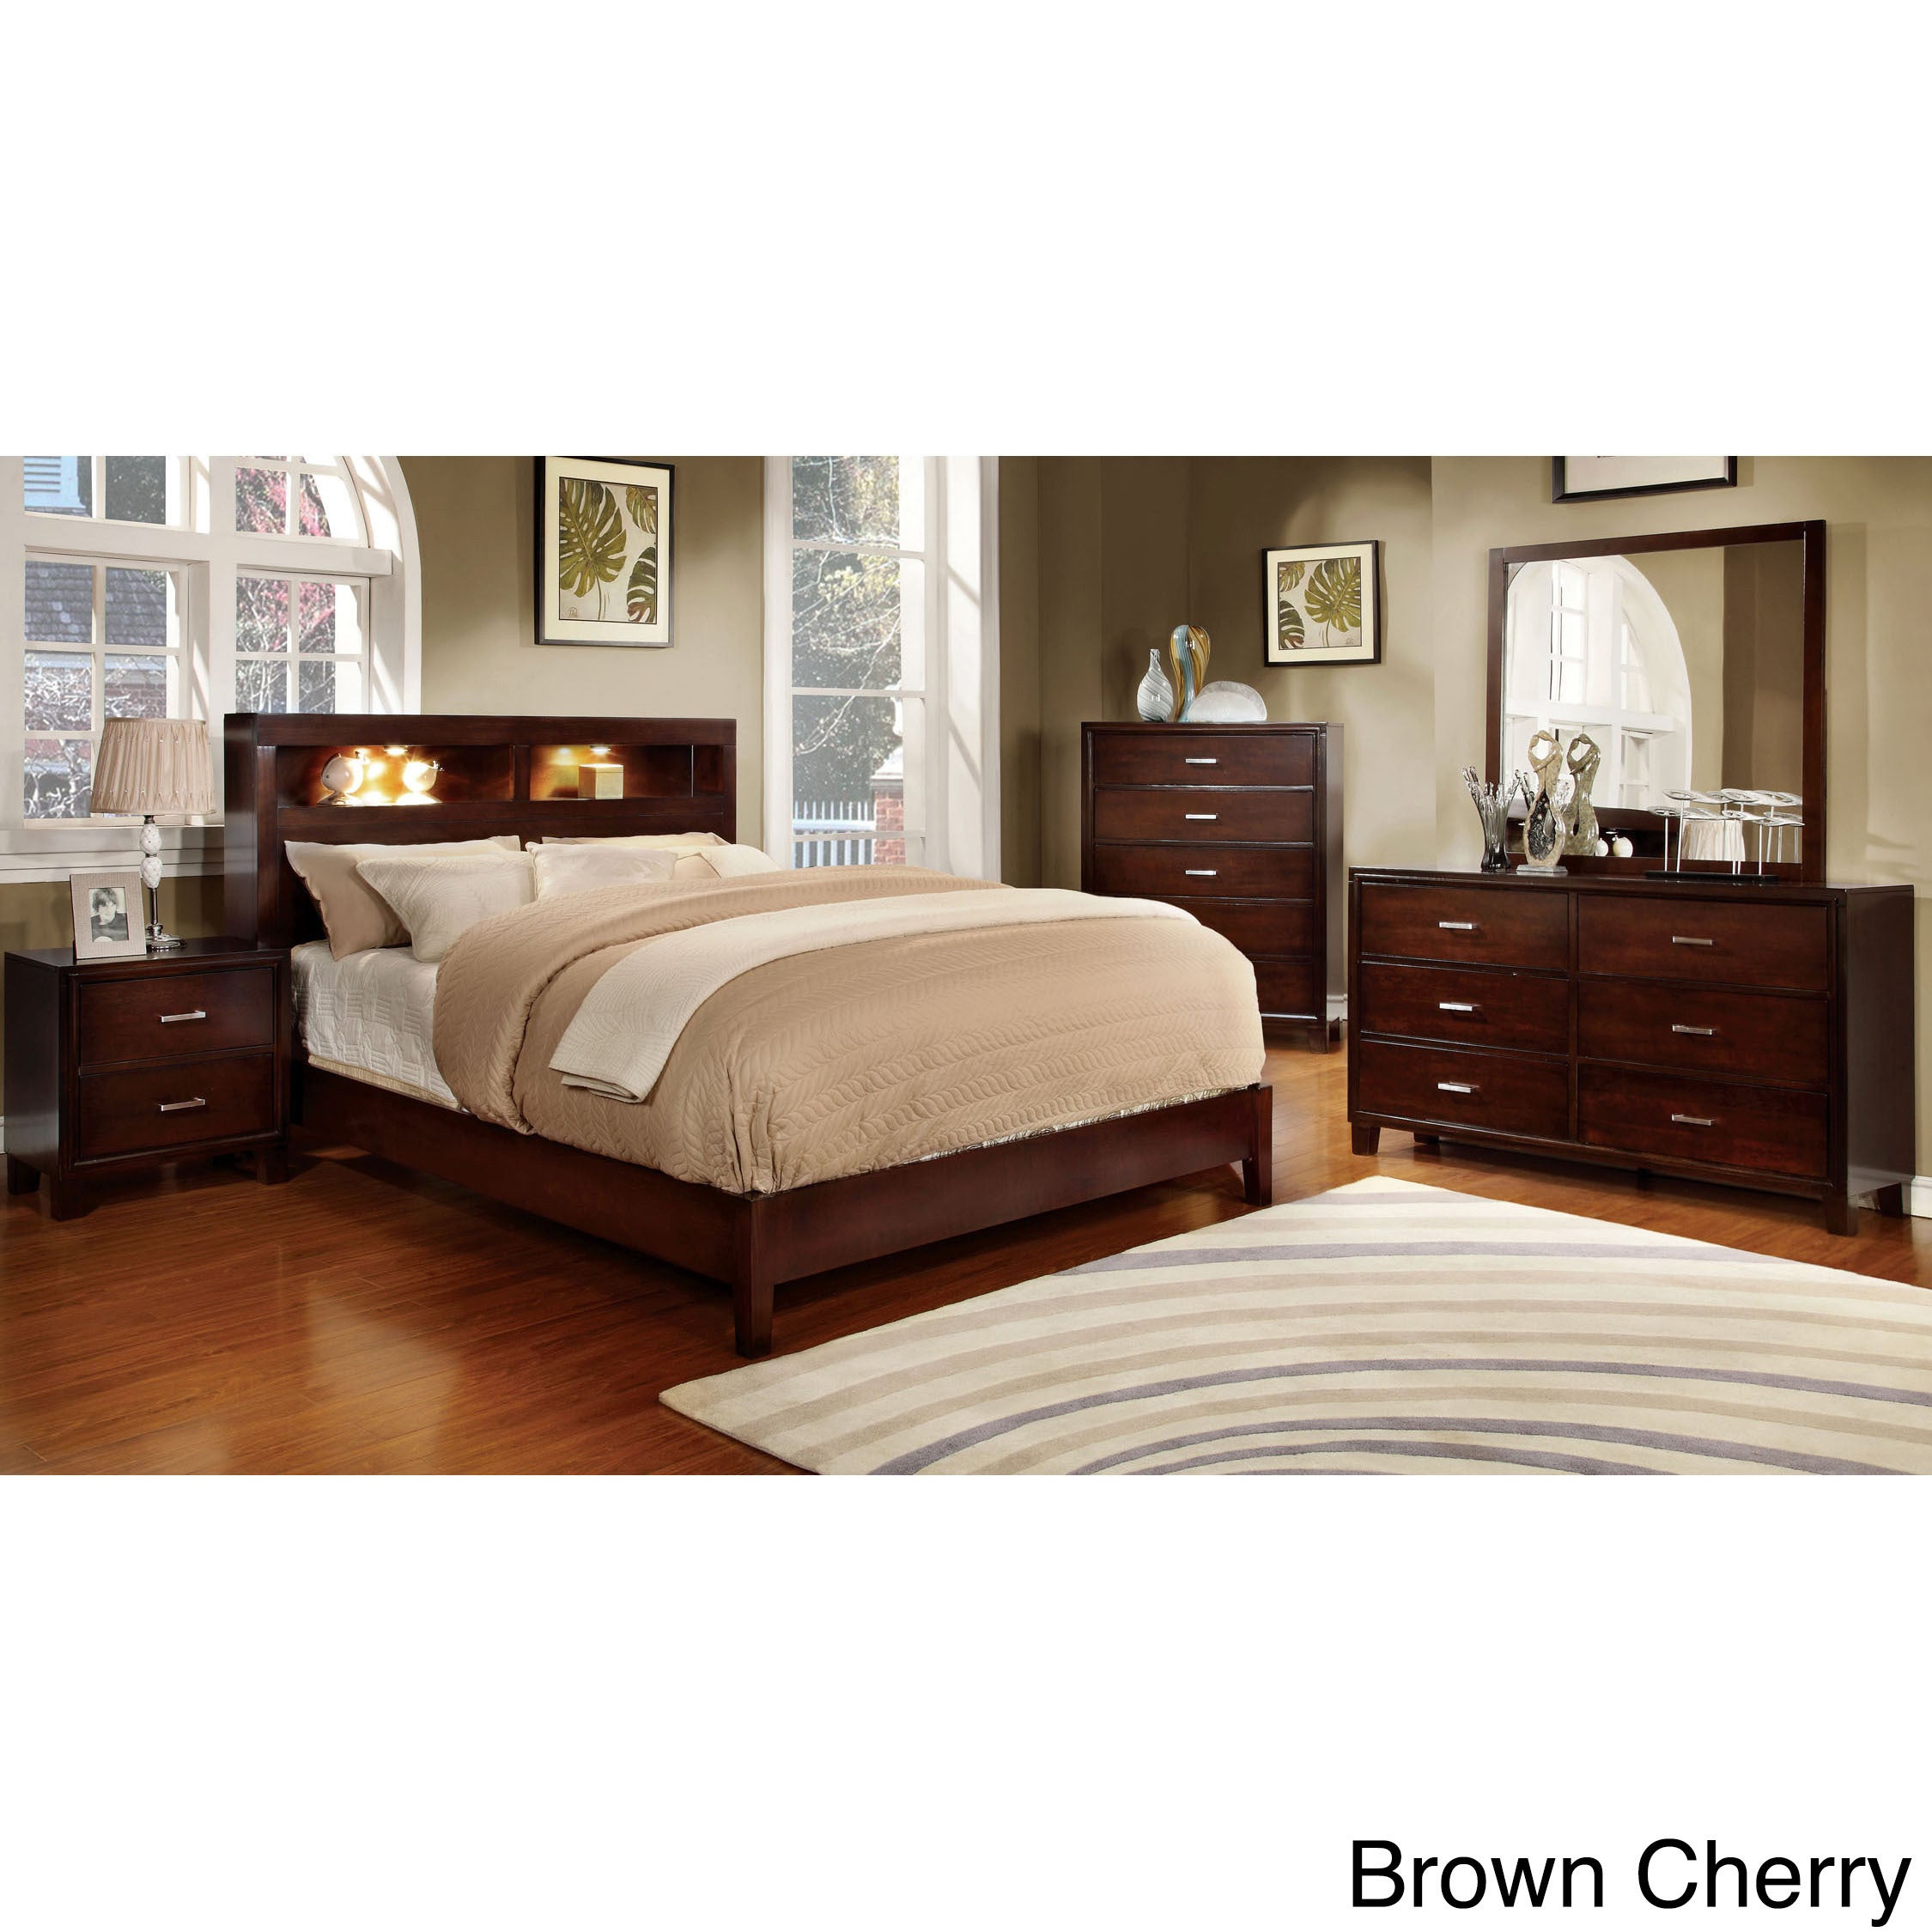 make bedroom sets to platform more home frame chic by ashley bed sleigh collection timberline the queen comfortable signature design